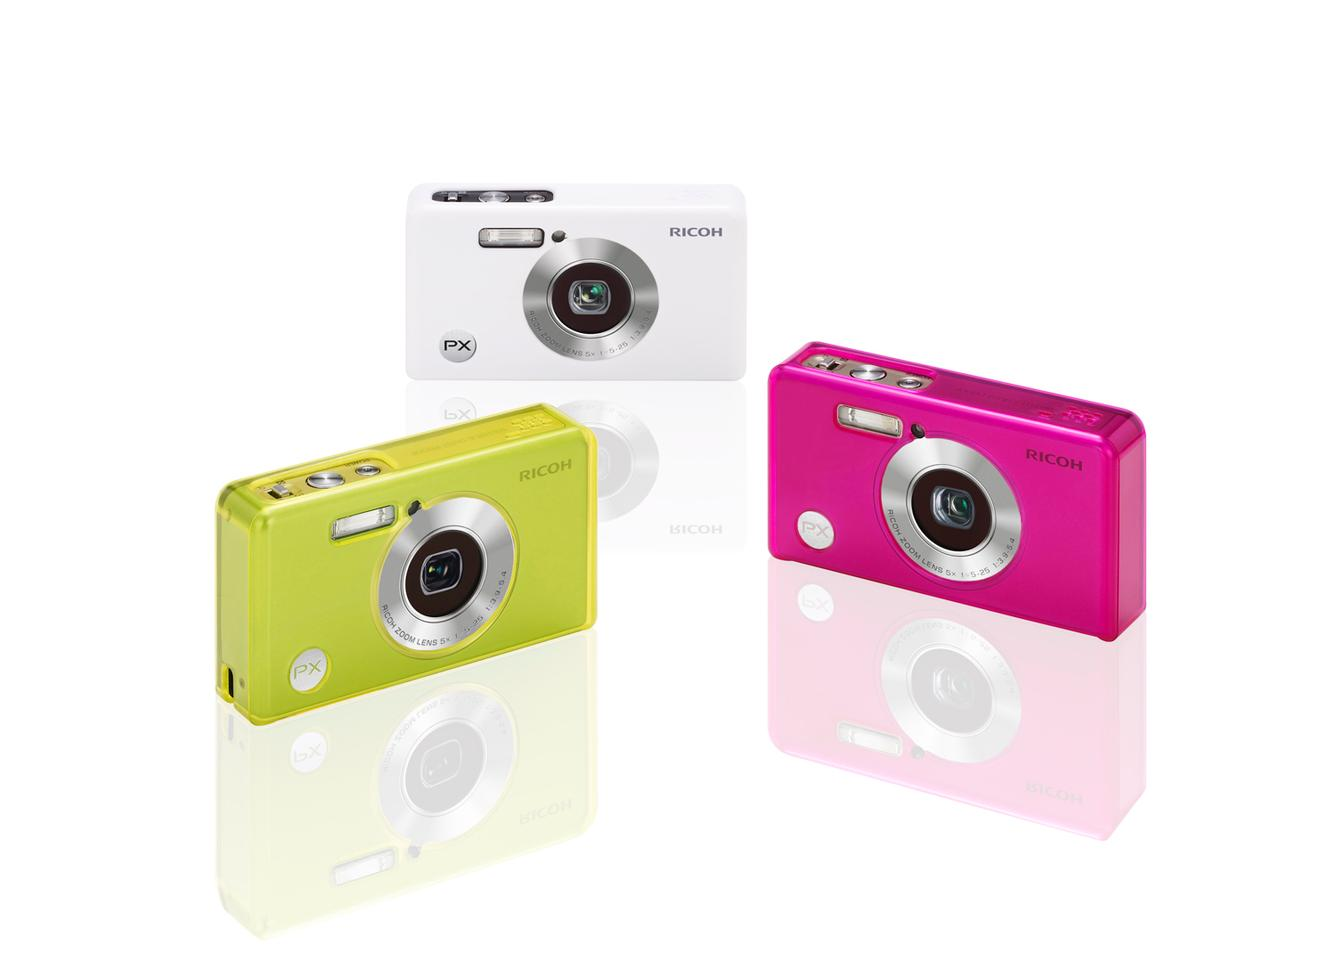 Users can choose from a range of colorful covers to brighten up - and further protect - the PX compact camera